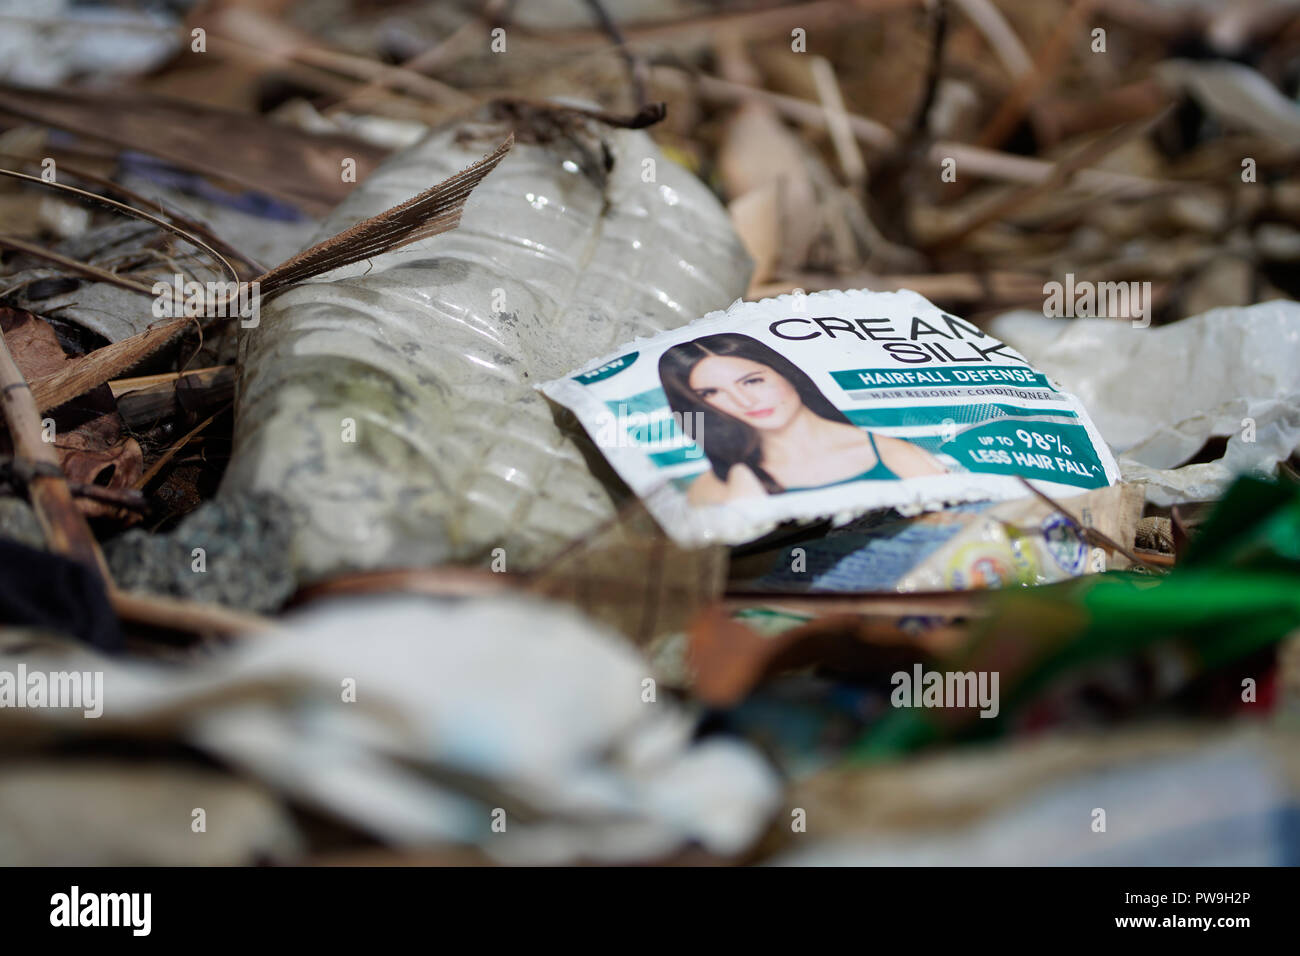 Single use plastic sachets discarded directly into the environment - regarded as one of the main plastic pollutants within South East Asia. - Stock Image